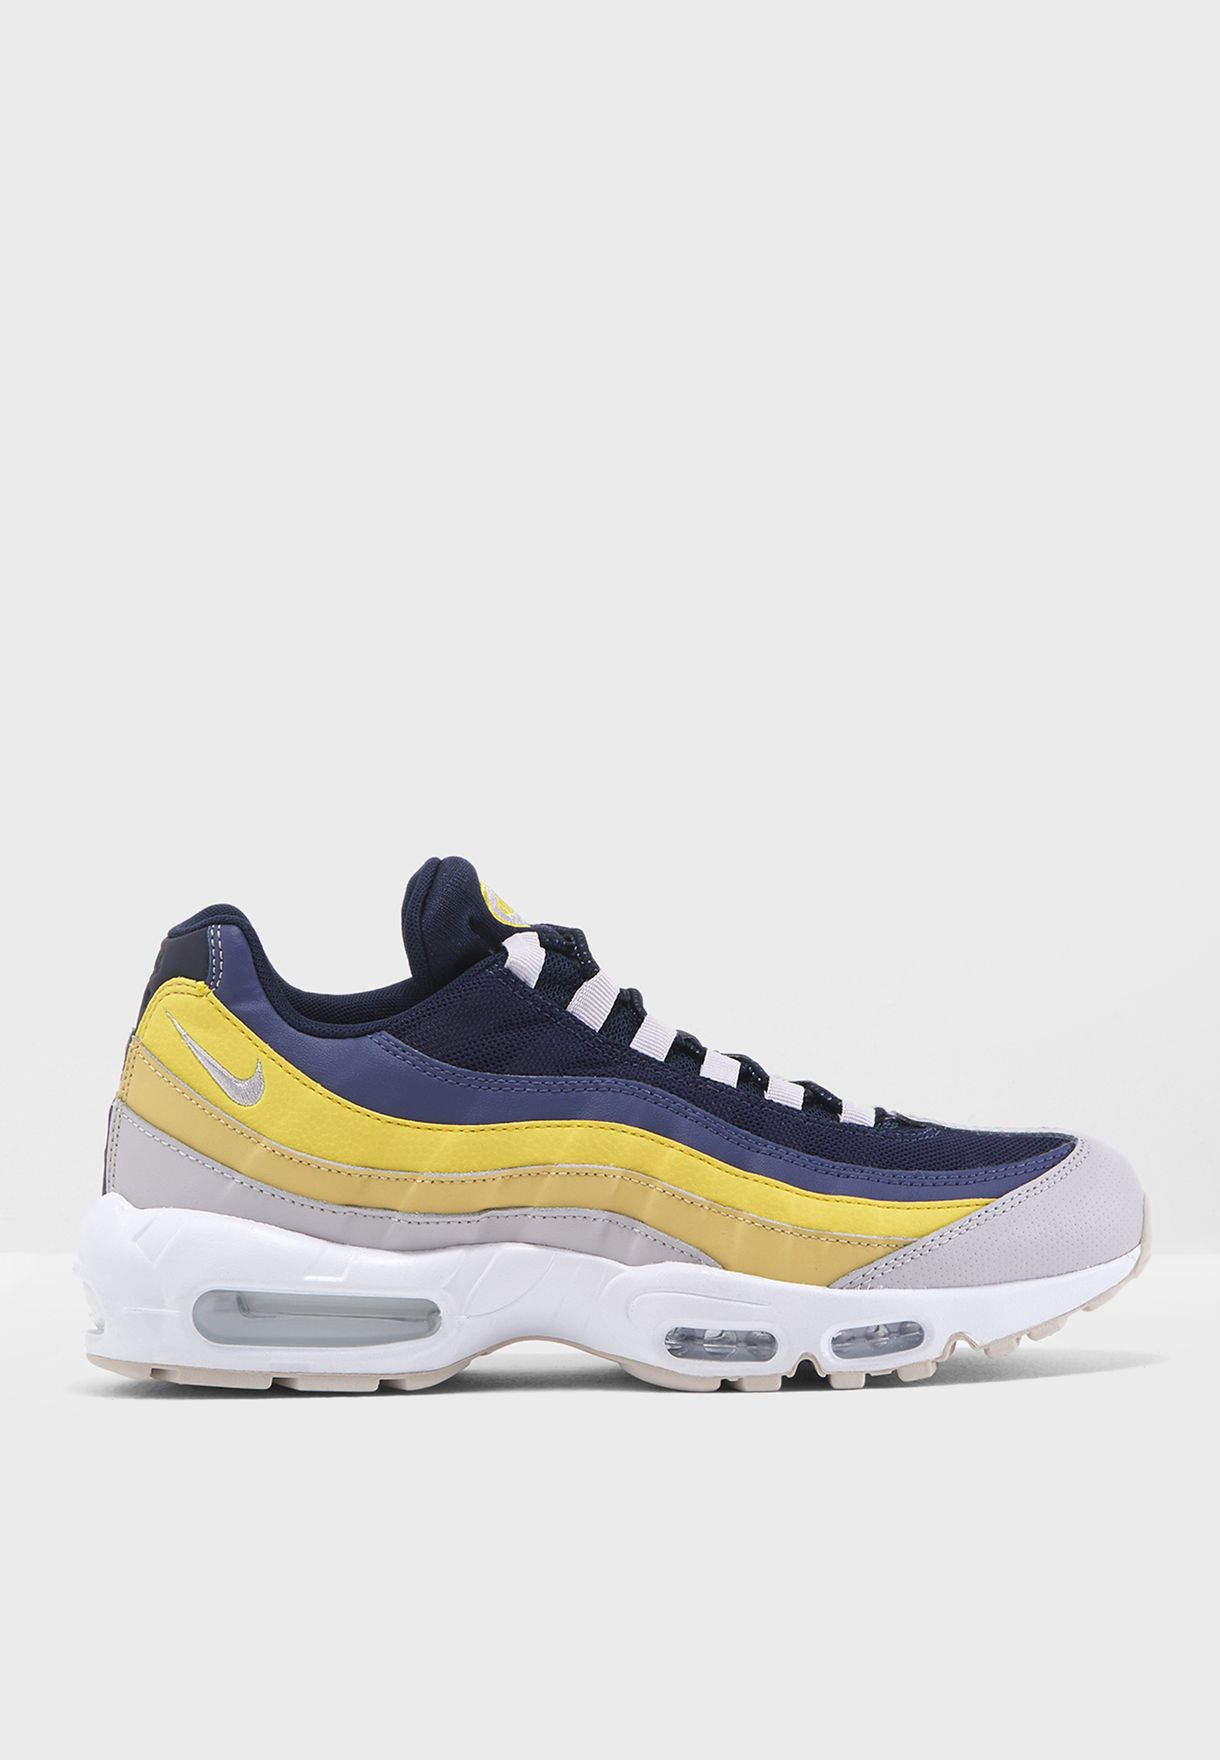 san francisco 30145 68fee Air Max 95 Essential